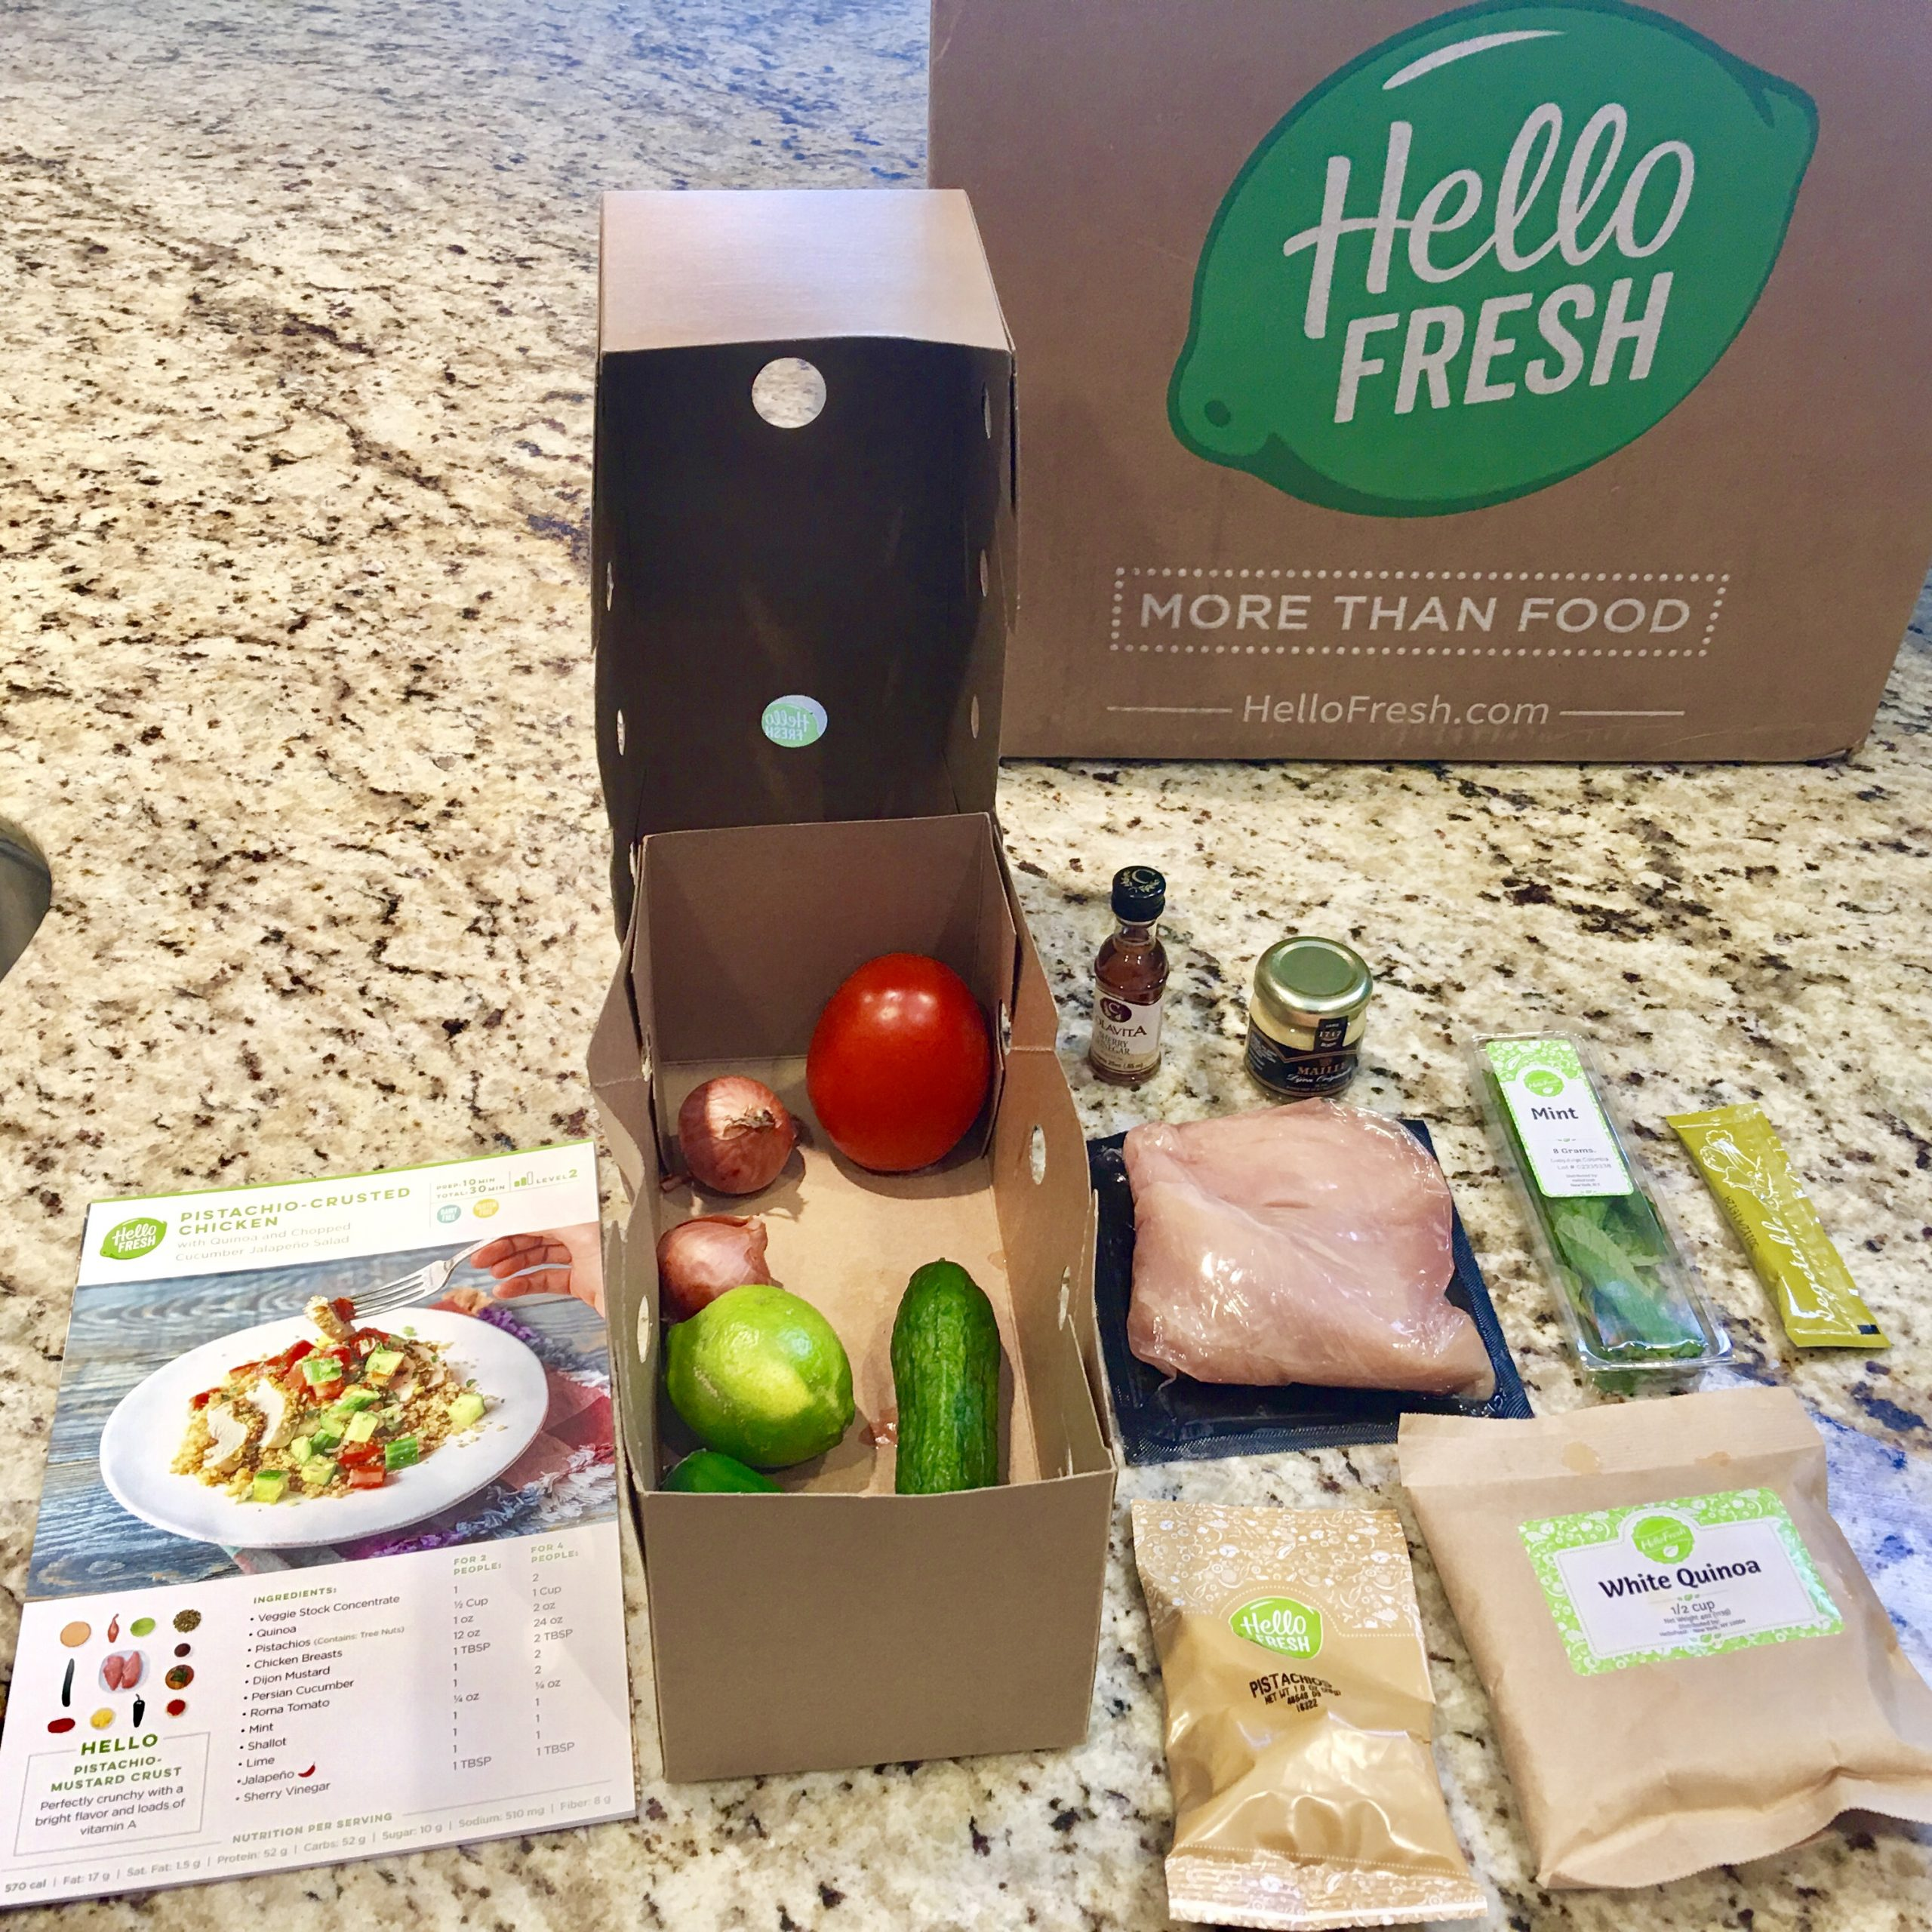 Buy Meal Kit Delivery Service Deal